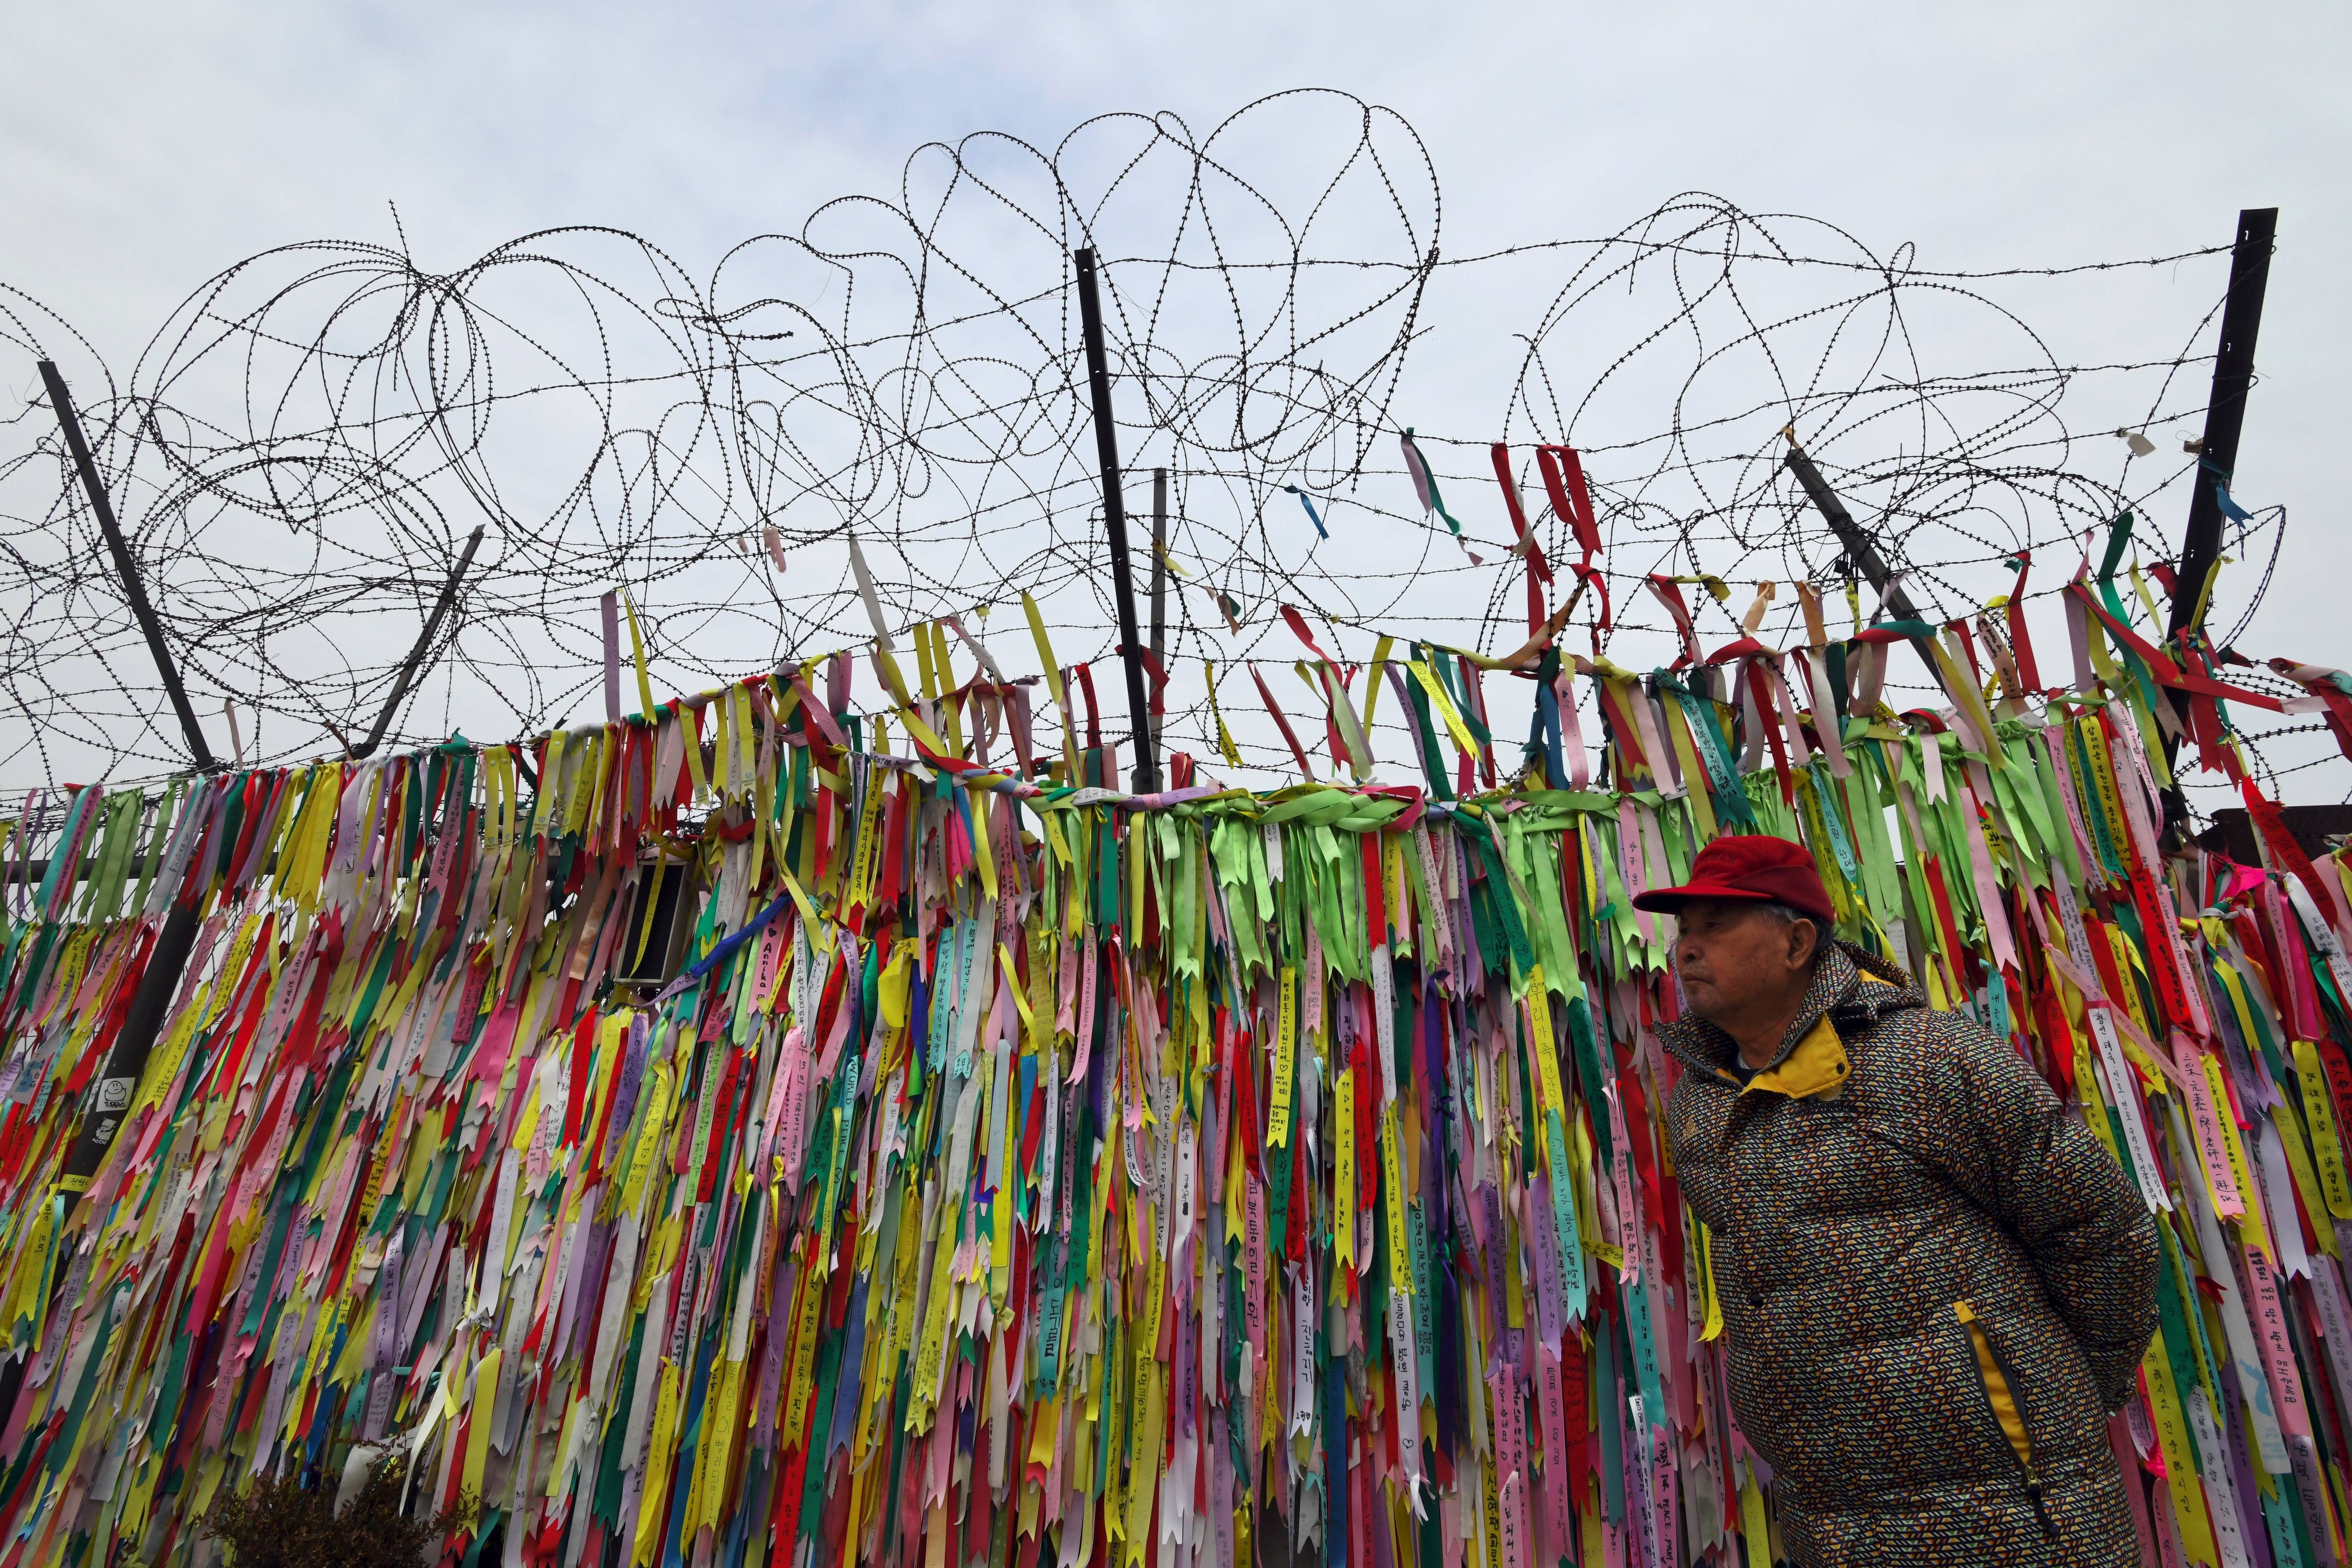 A man walks past a military fence covered with ribbons calling for peace and reunification at the Imjingak peace park near the Demilitarized Zone (DMZ) dividing the two Koreas at the border city of Paju on Jan. 8, 2018.